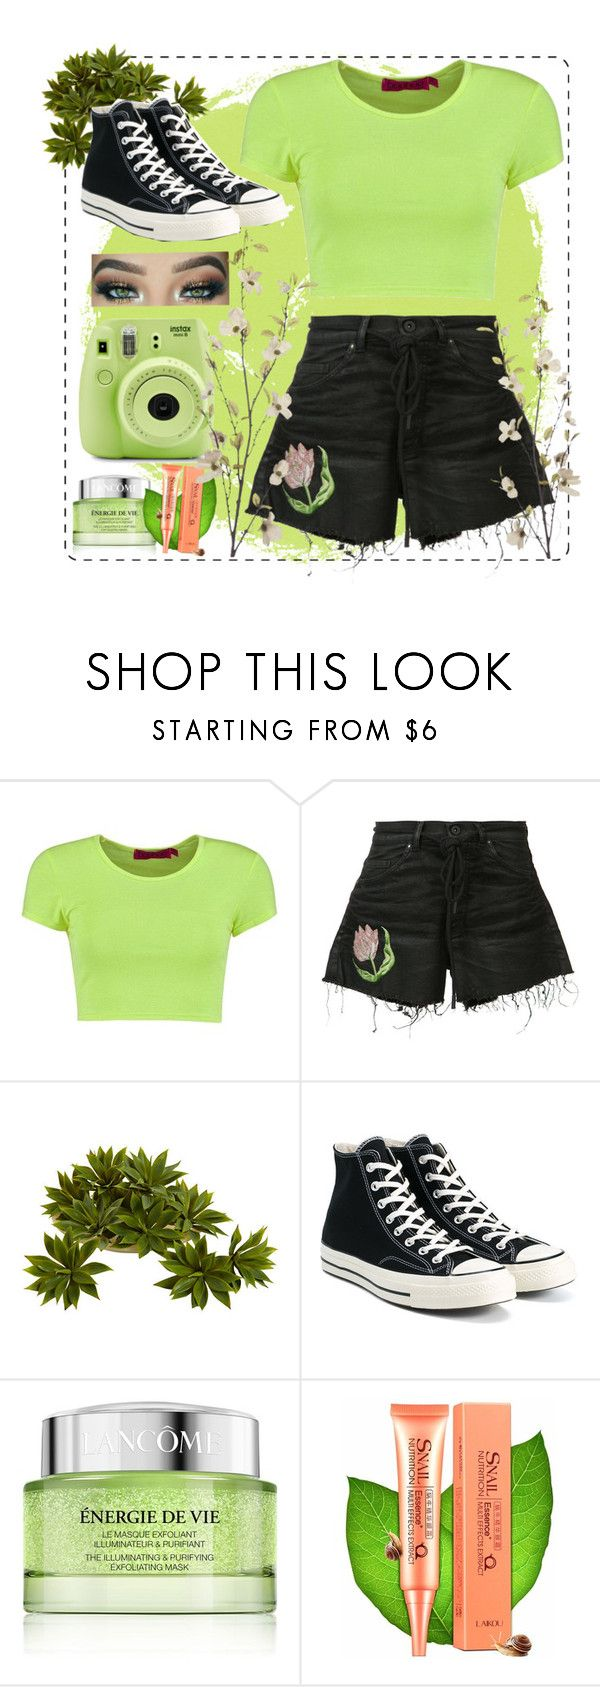 """""""#34"""" by silkeproumen ❤ liked on Polyvore featuring Boohoo, Off-White, Converse, Lancôme, Pier 1 Imports, Fujifilm, croptop, GREEN, Flowers and converse"""